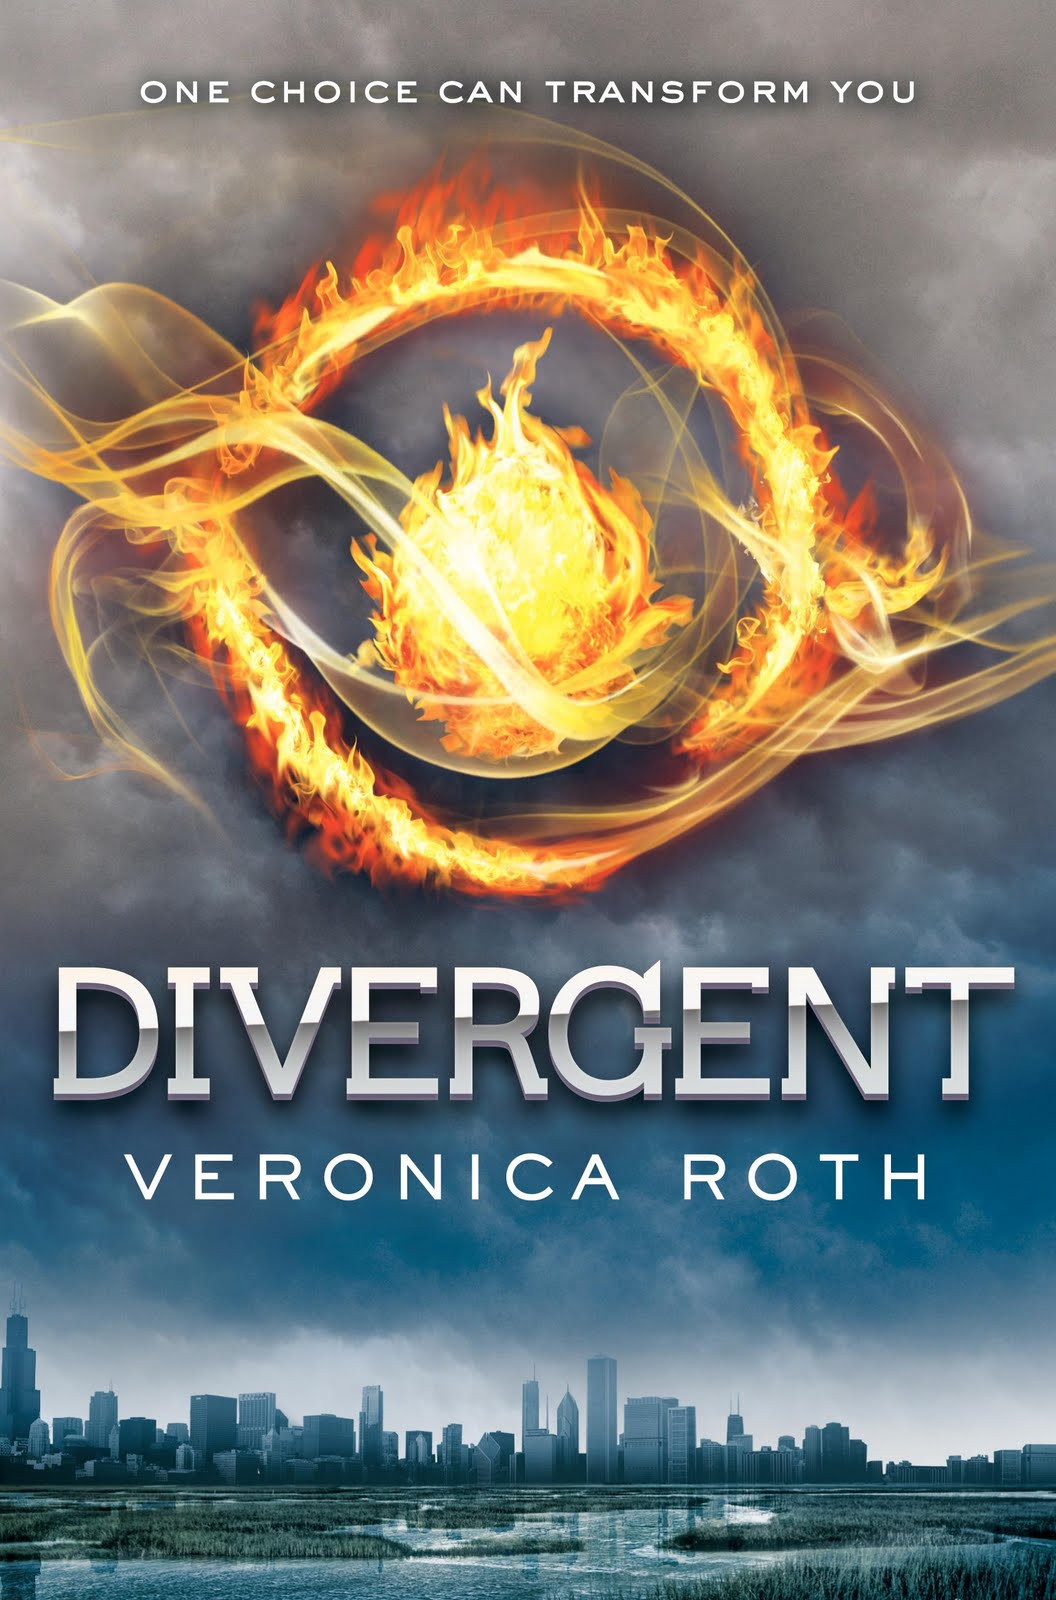 Divergent by Veronica Roth review